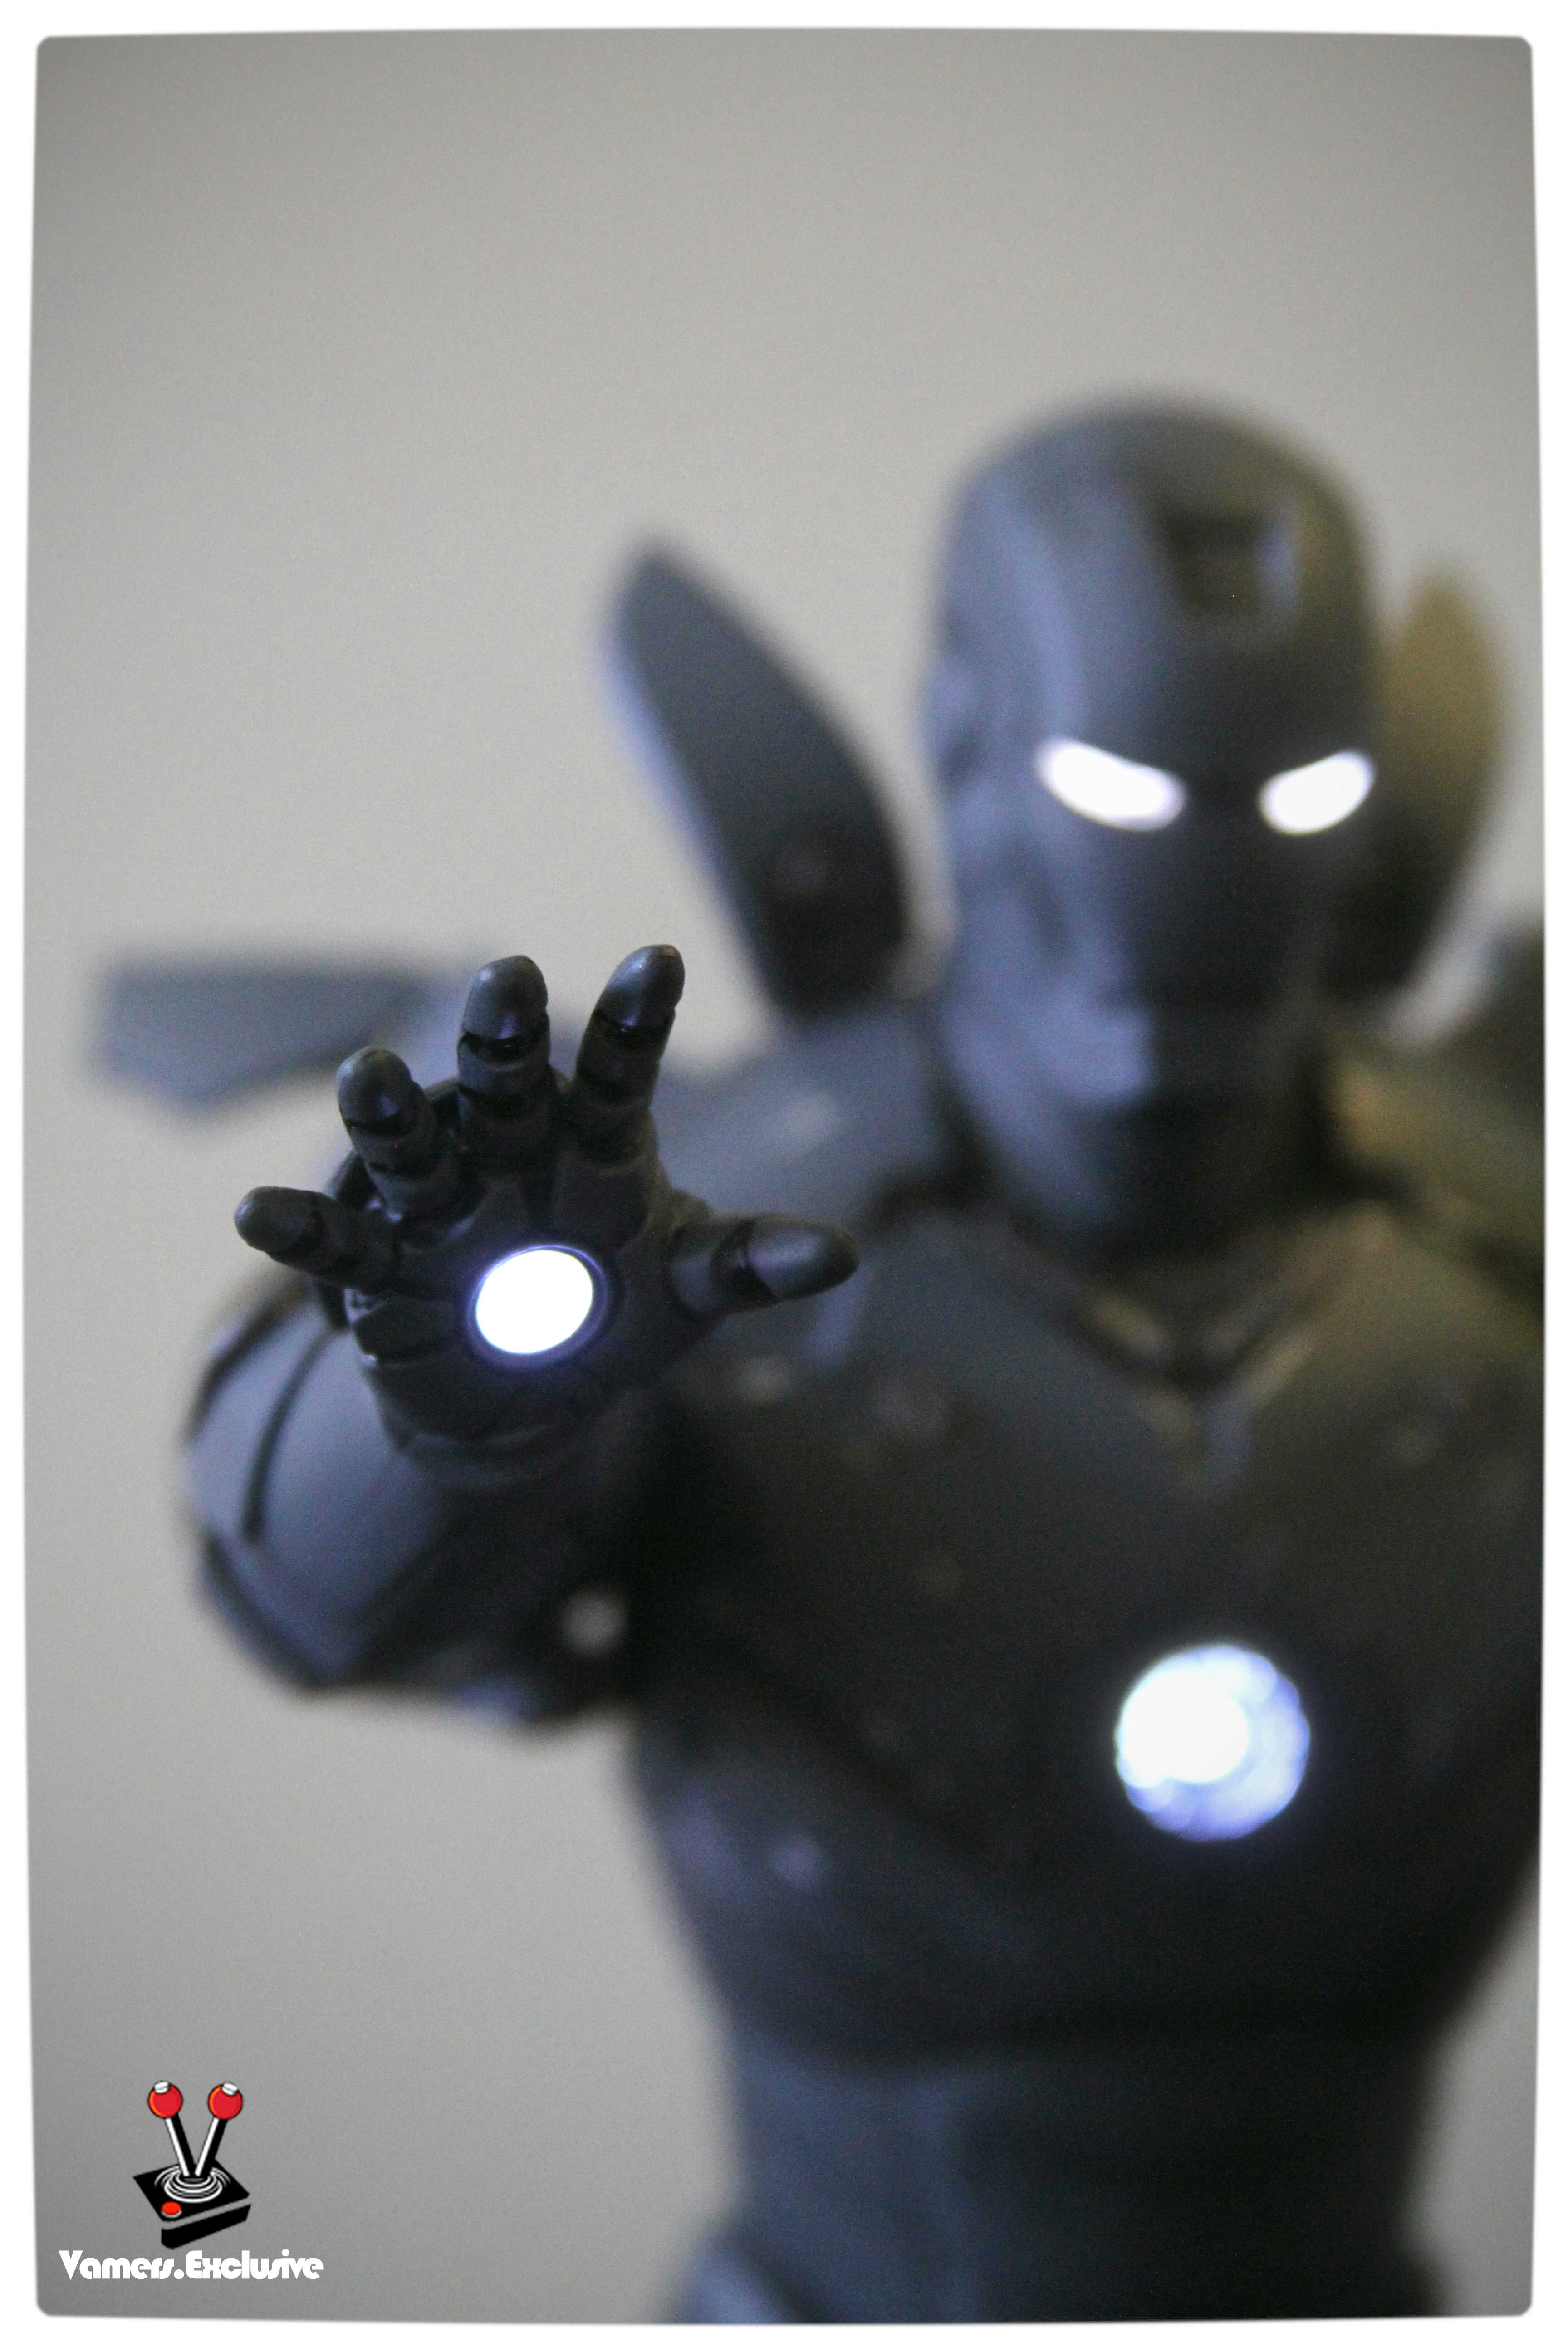 Vamers - Hot Toys - Limited Edition Collectible - Iron Man Mark III - SIlly Thing's TK Edition - MMS101 - Flaps Extended and Arc Reactor Engaged - Right Hand Close Up (Light On)